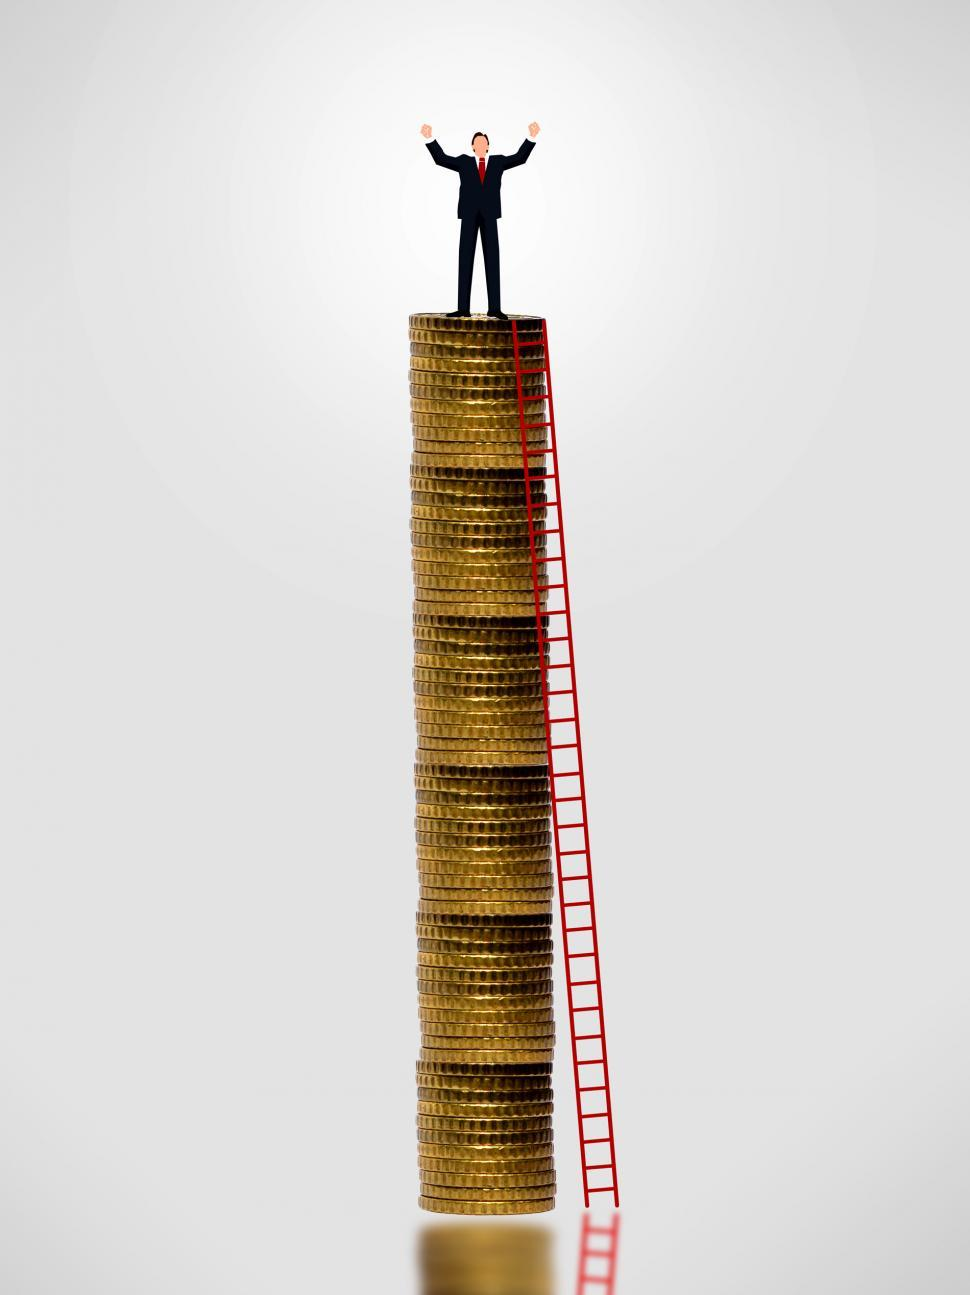 Download Free Stock HD Photo of Businessman on top of gold coin stack - Wealth growth concept Online